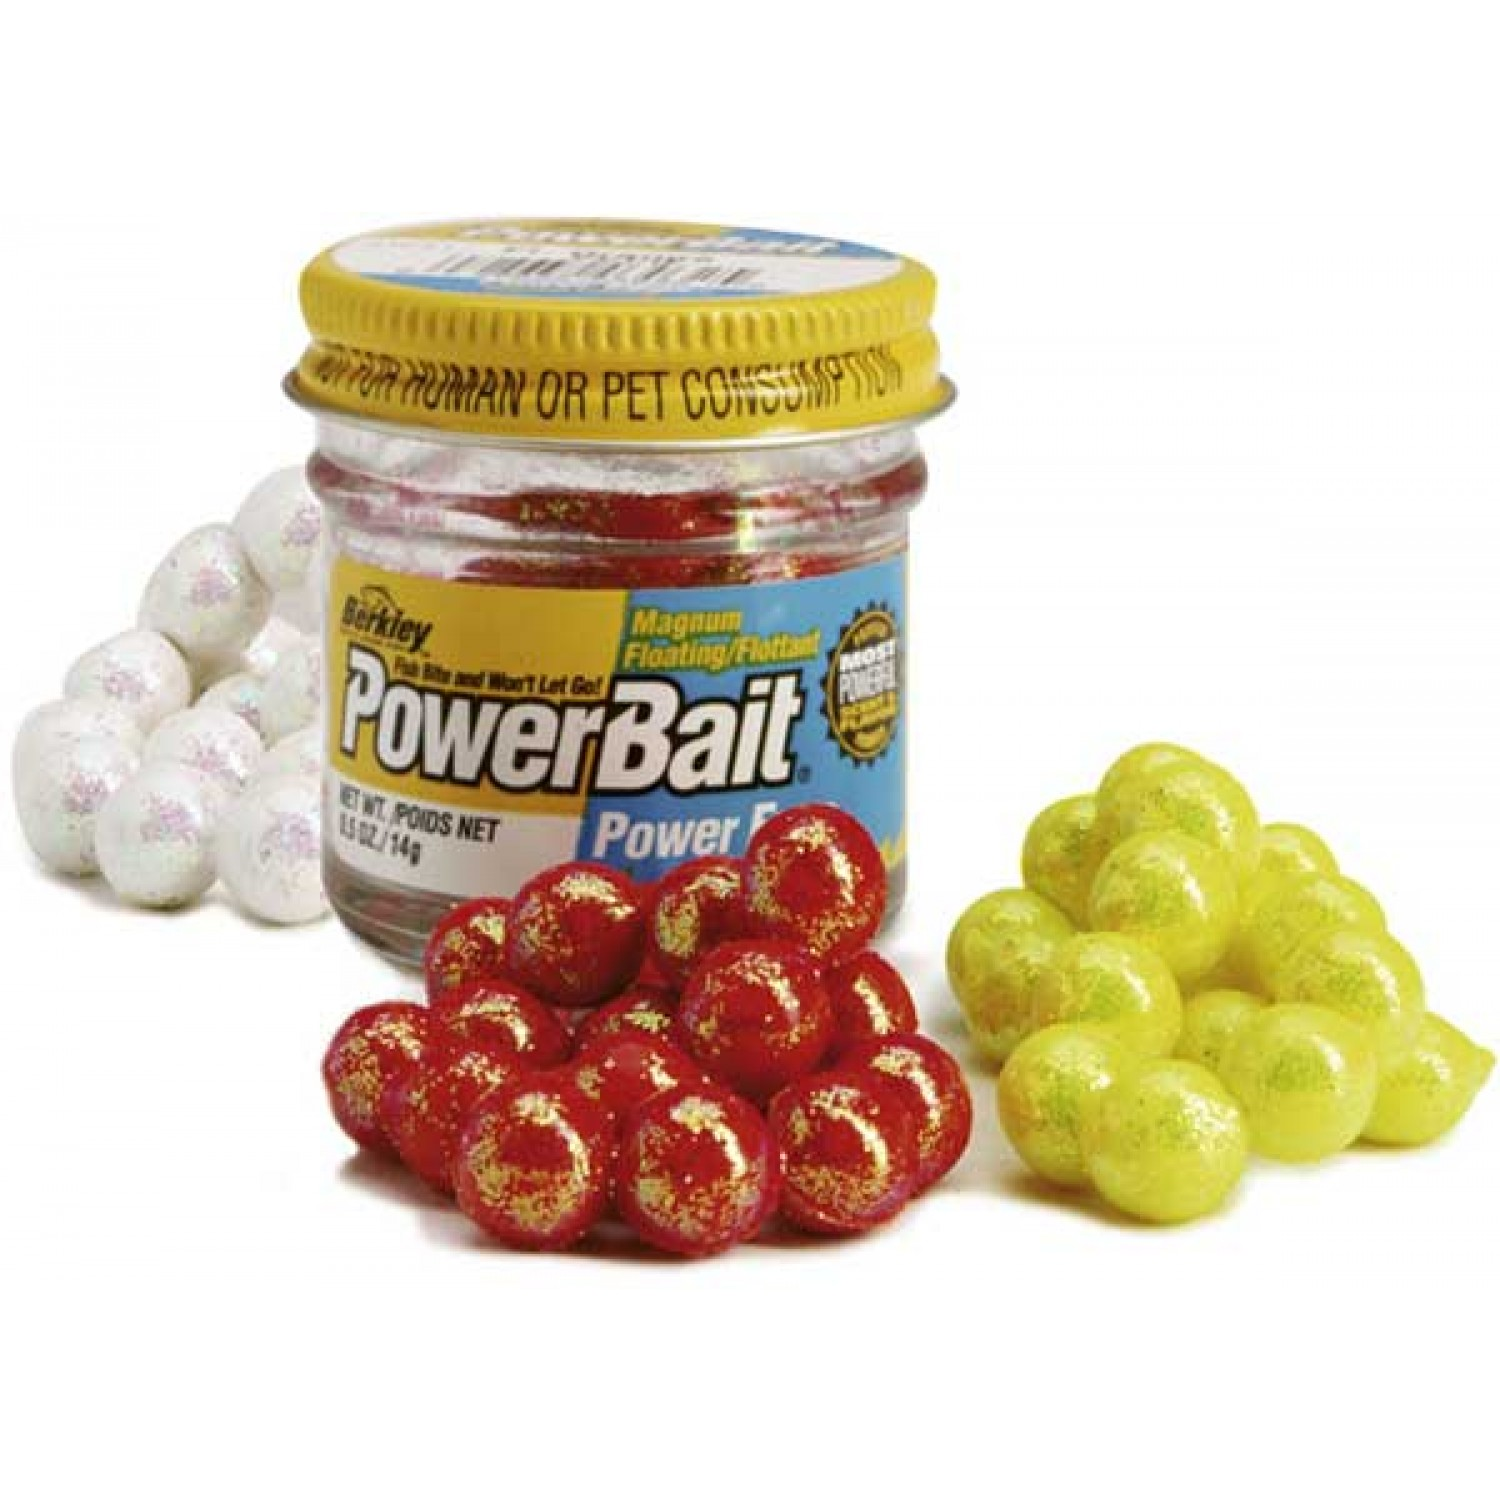 BERKLEY Powerbait Sparkle Power Eggs, 14g